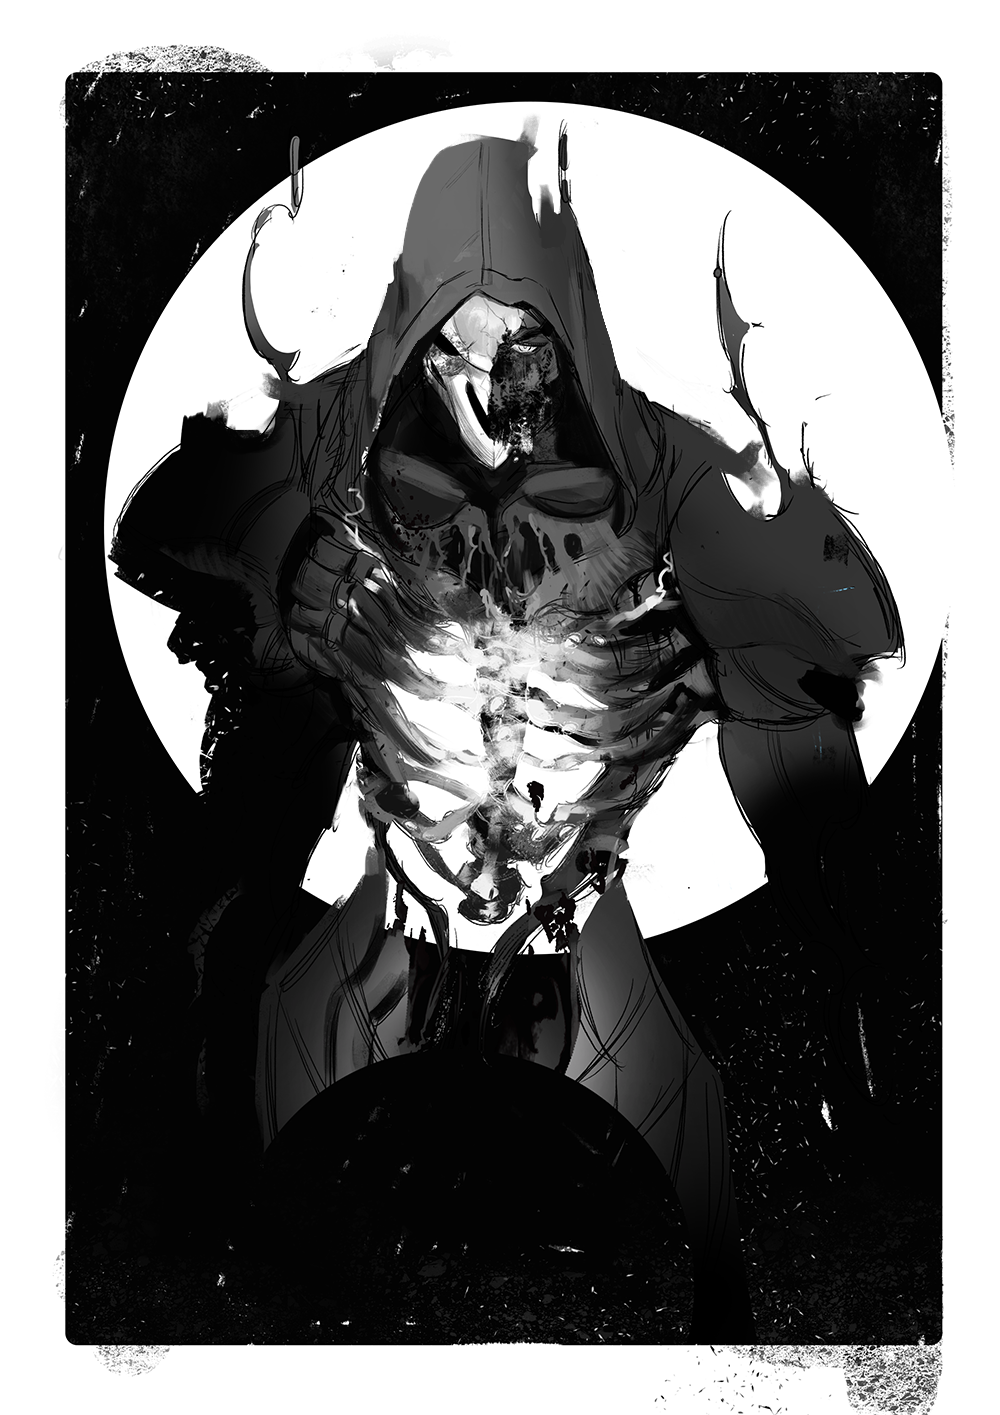 Tumblr P04yj6xew01uzsfb1o1 1280 Png 1000 1415 Overwatch Reaper Overwatch Tattoo Overwatch Wallpapers